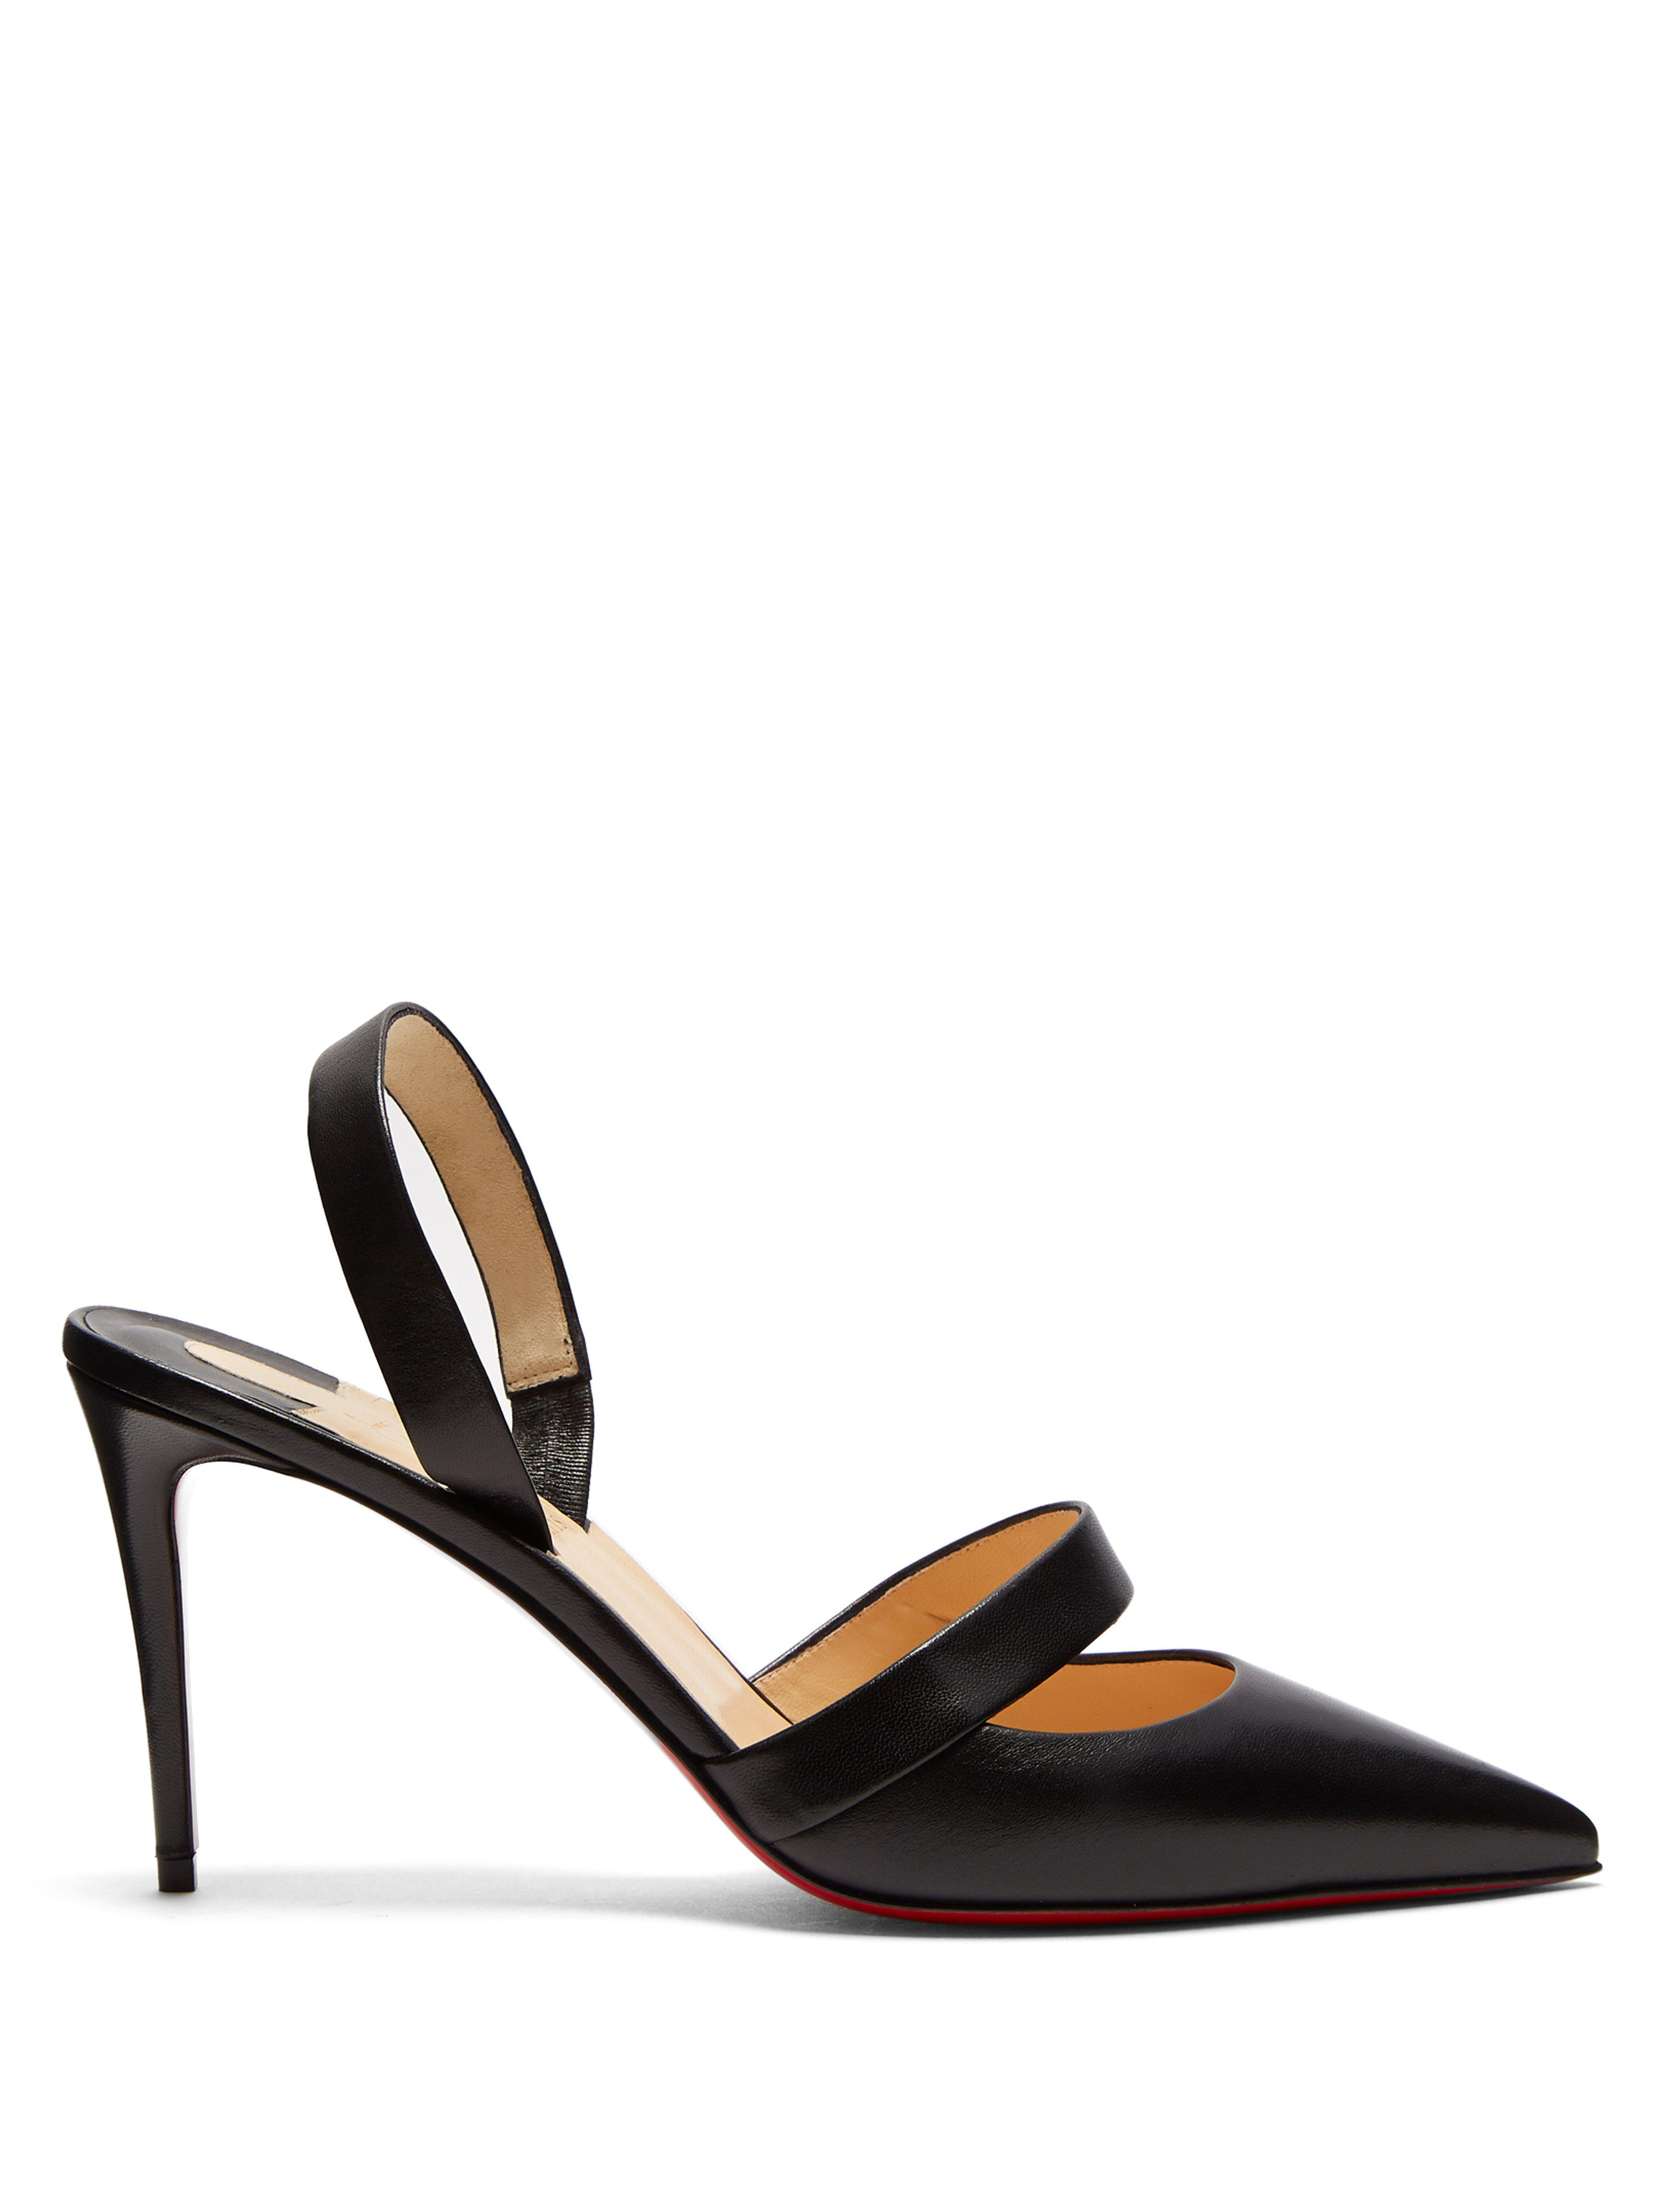 8bc63cf841f Christian Louboutin Actina Slingback Leather Pumps in Black - Lyst